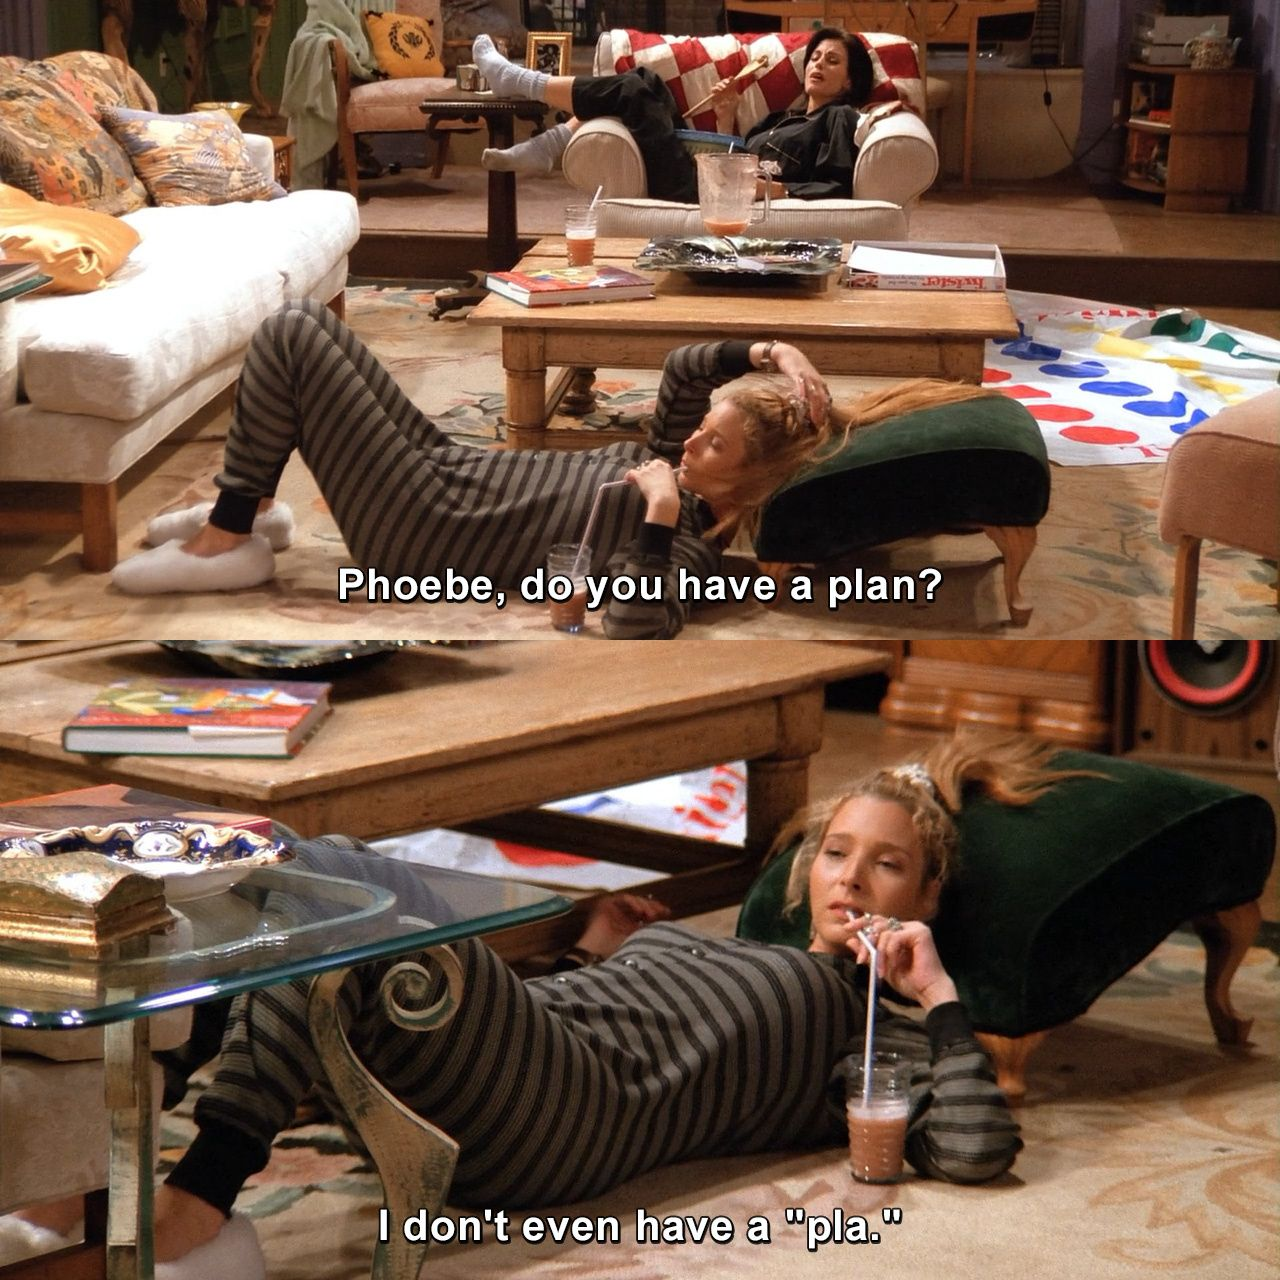 Friends - The story of my life...